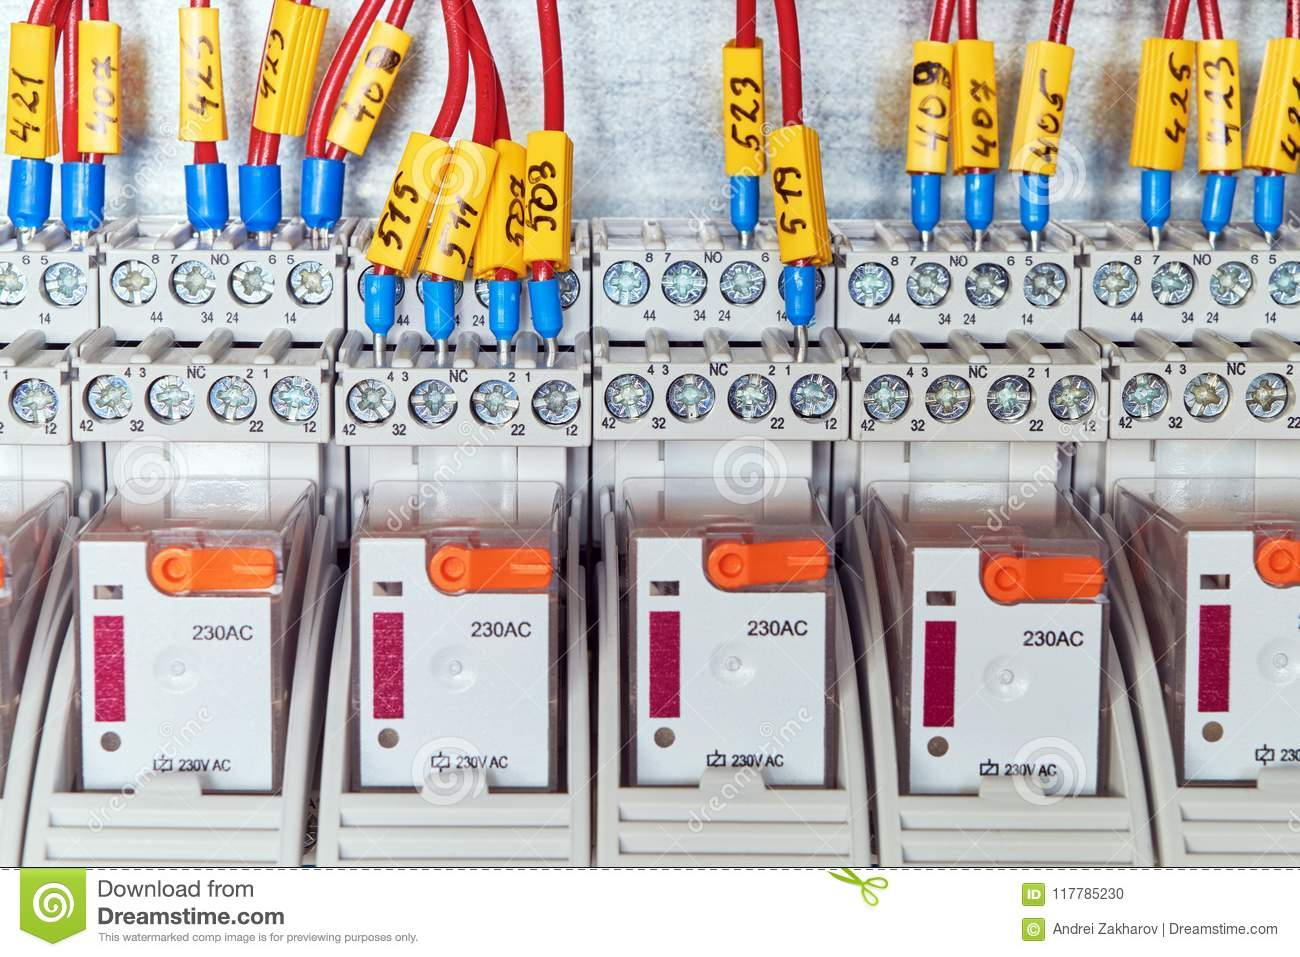 The electrical wires or cables are connected to an intermediate relay according to the scheme.